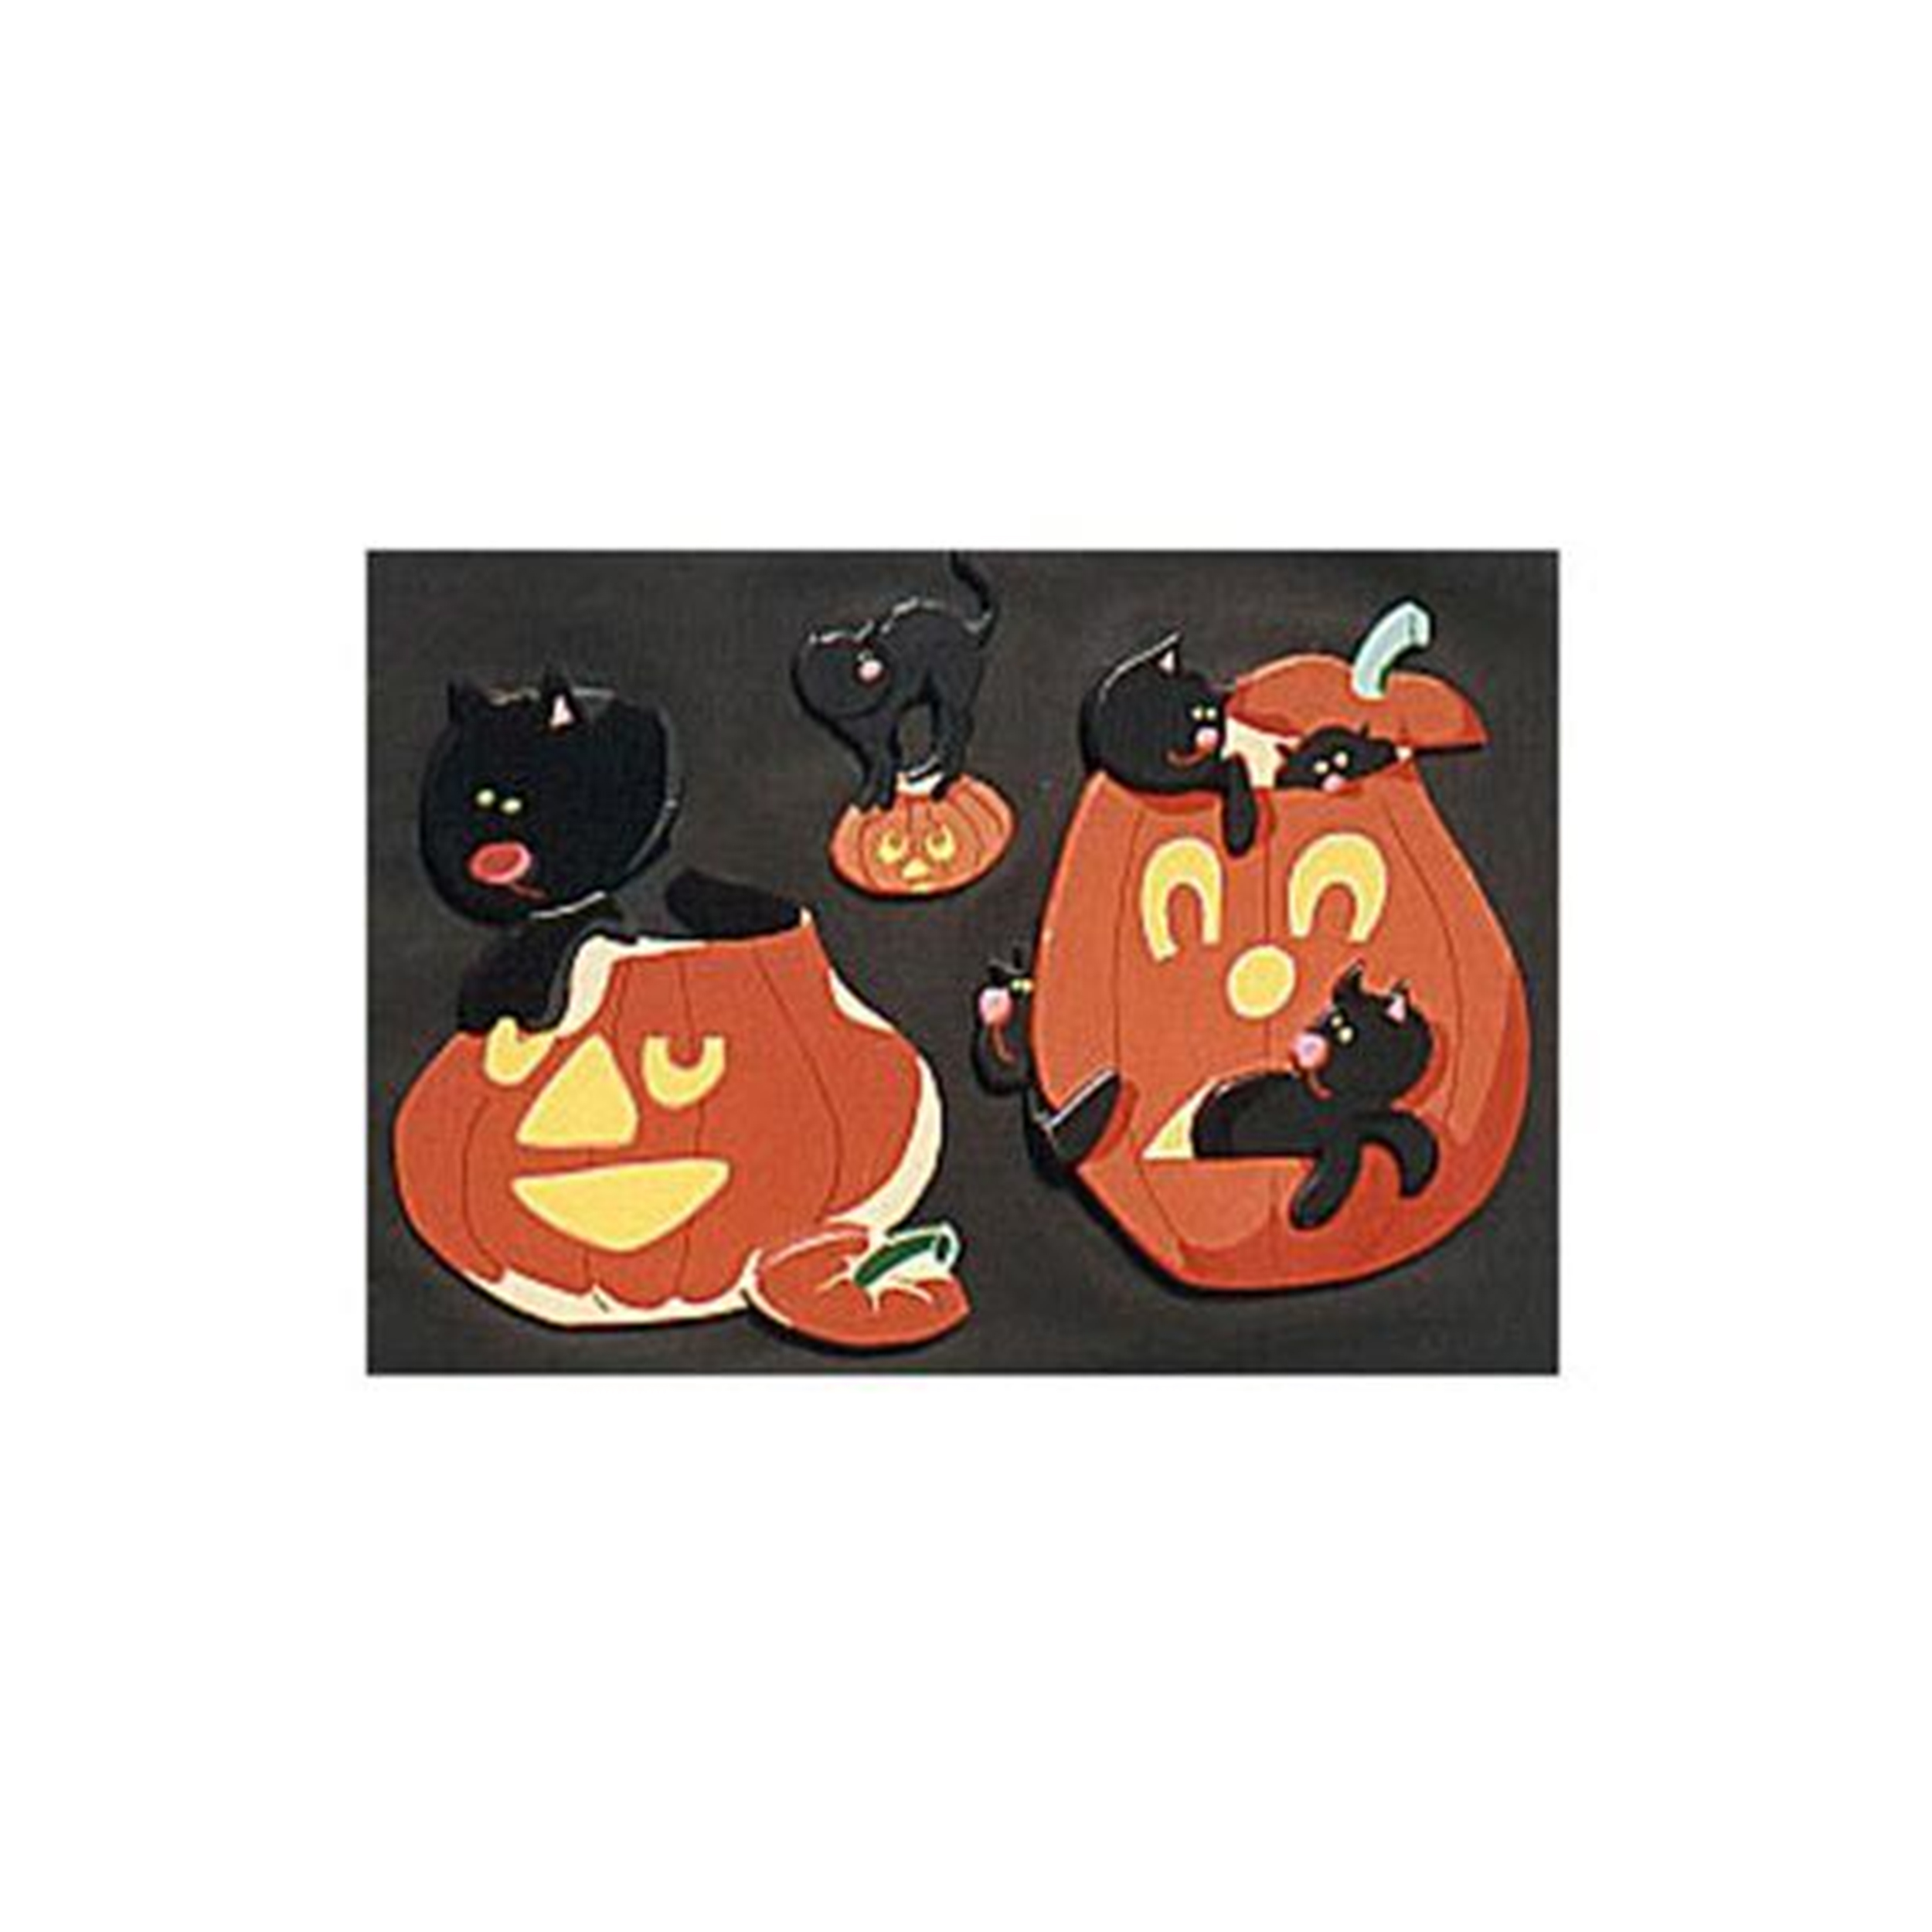 Woodworking Project Paper Plan to Build All Jack O'Lanterns